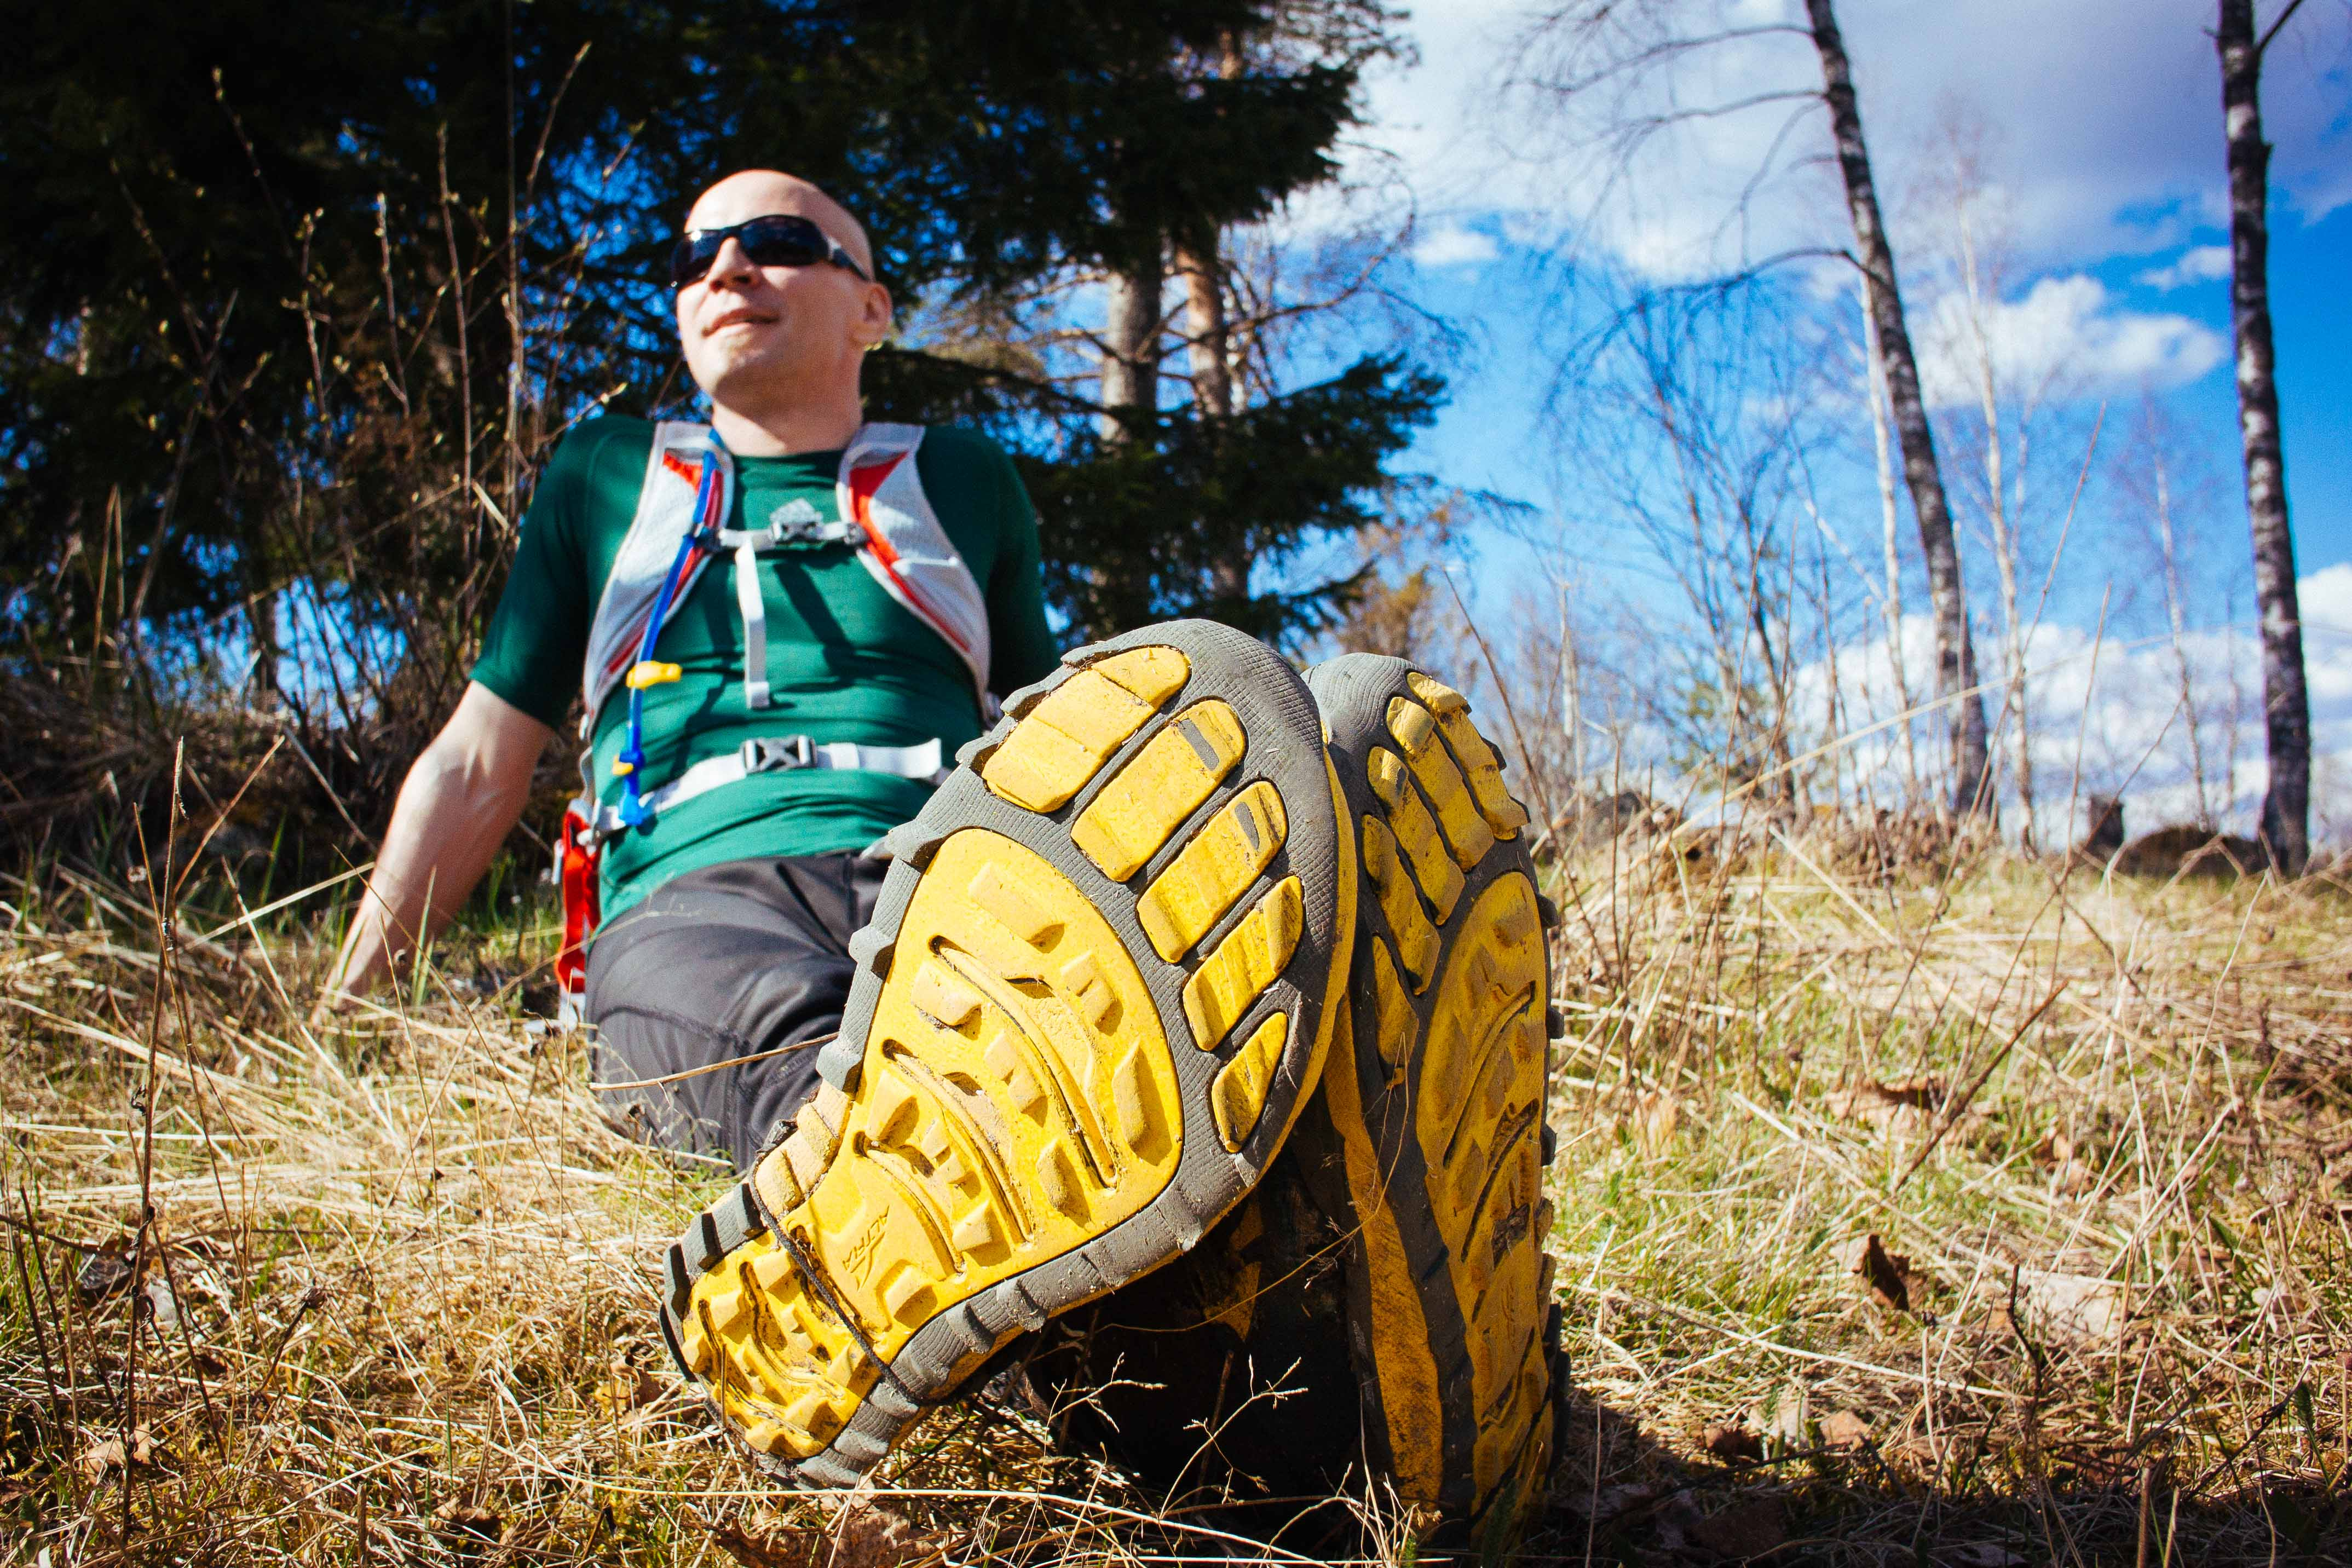 Recovering in the sun after Bodom Trail finish